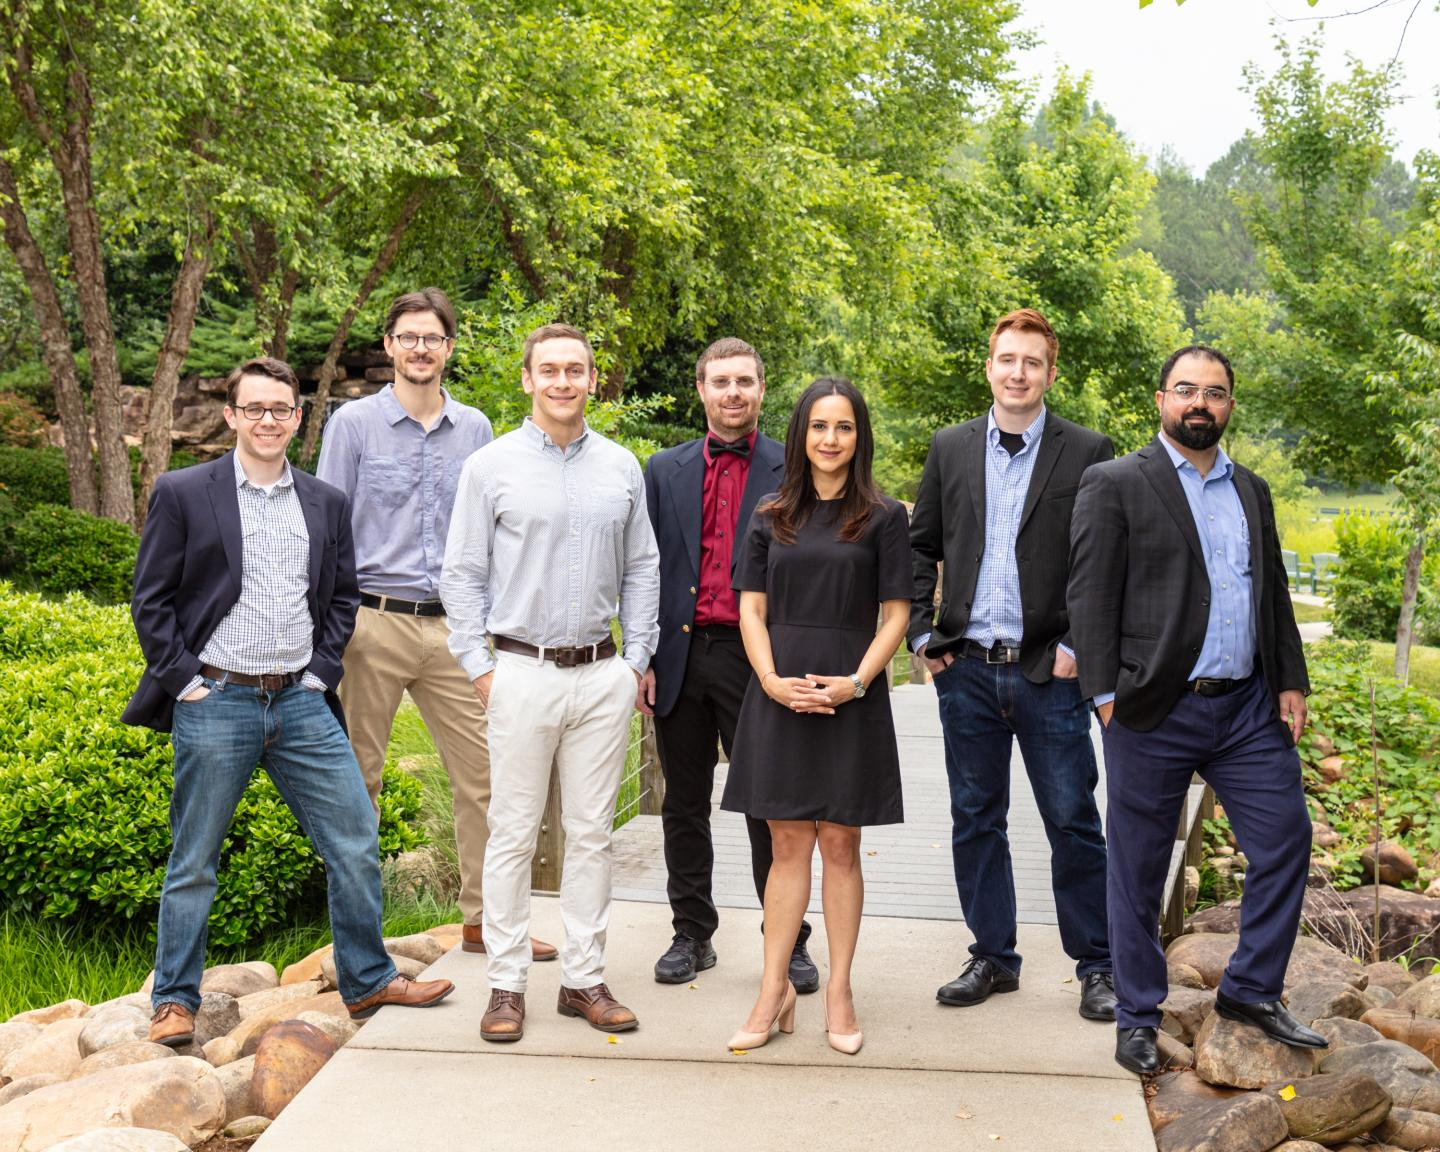 ORNL Welcomes Seven New Research Fellows to Innovation Crossroads